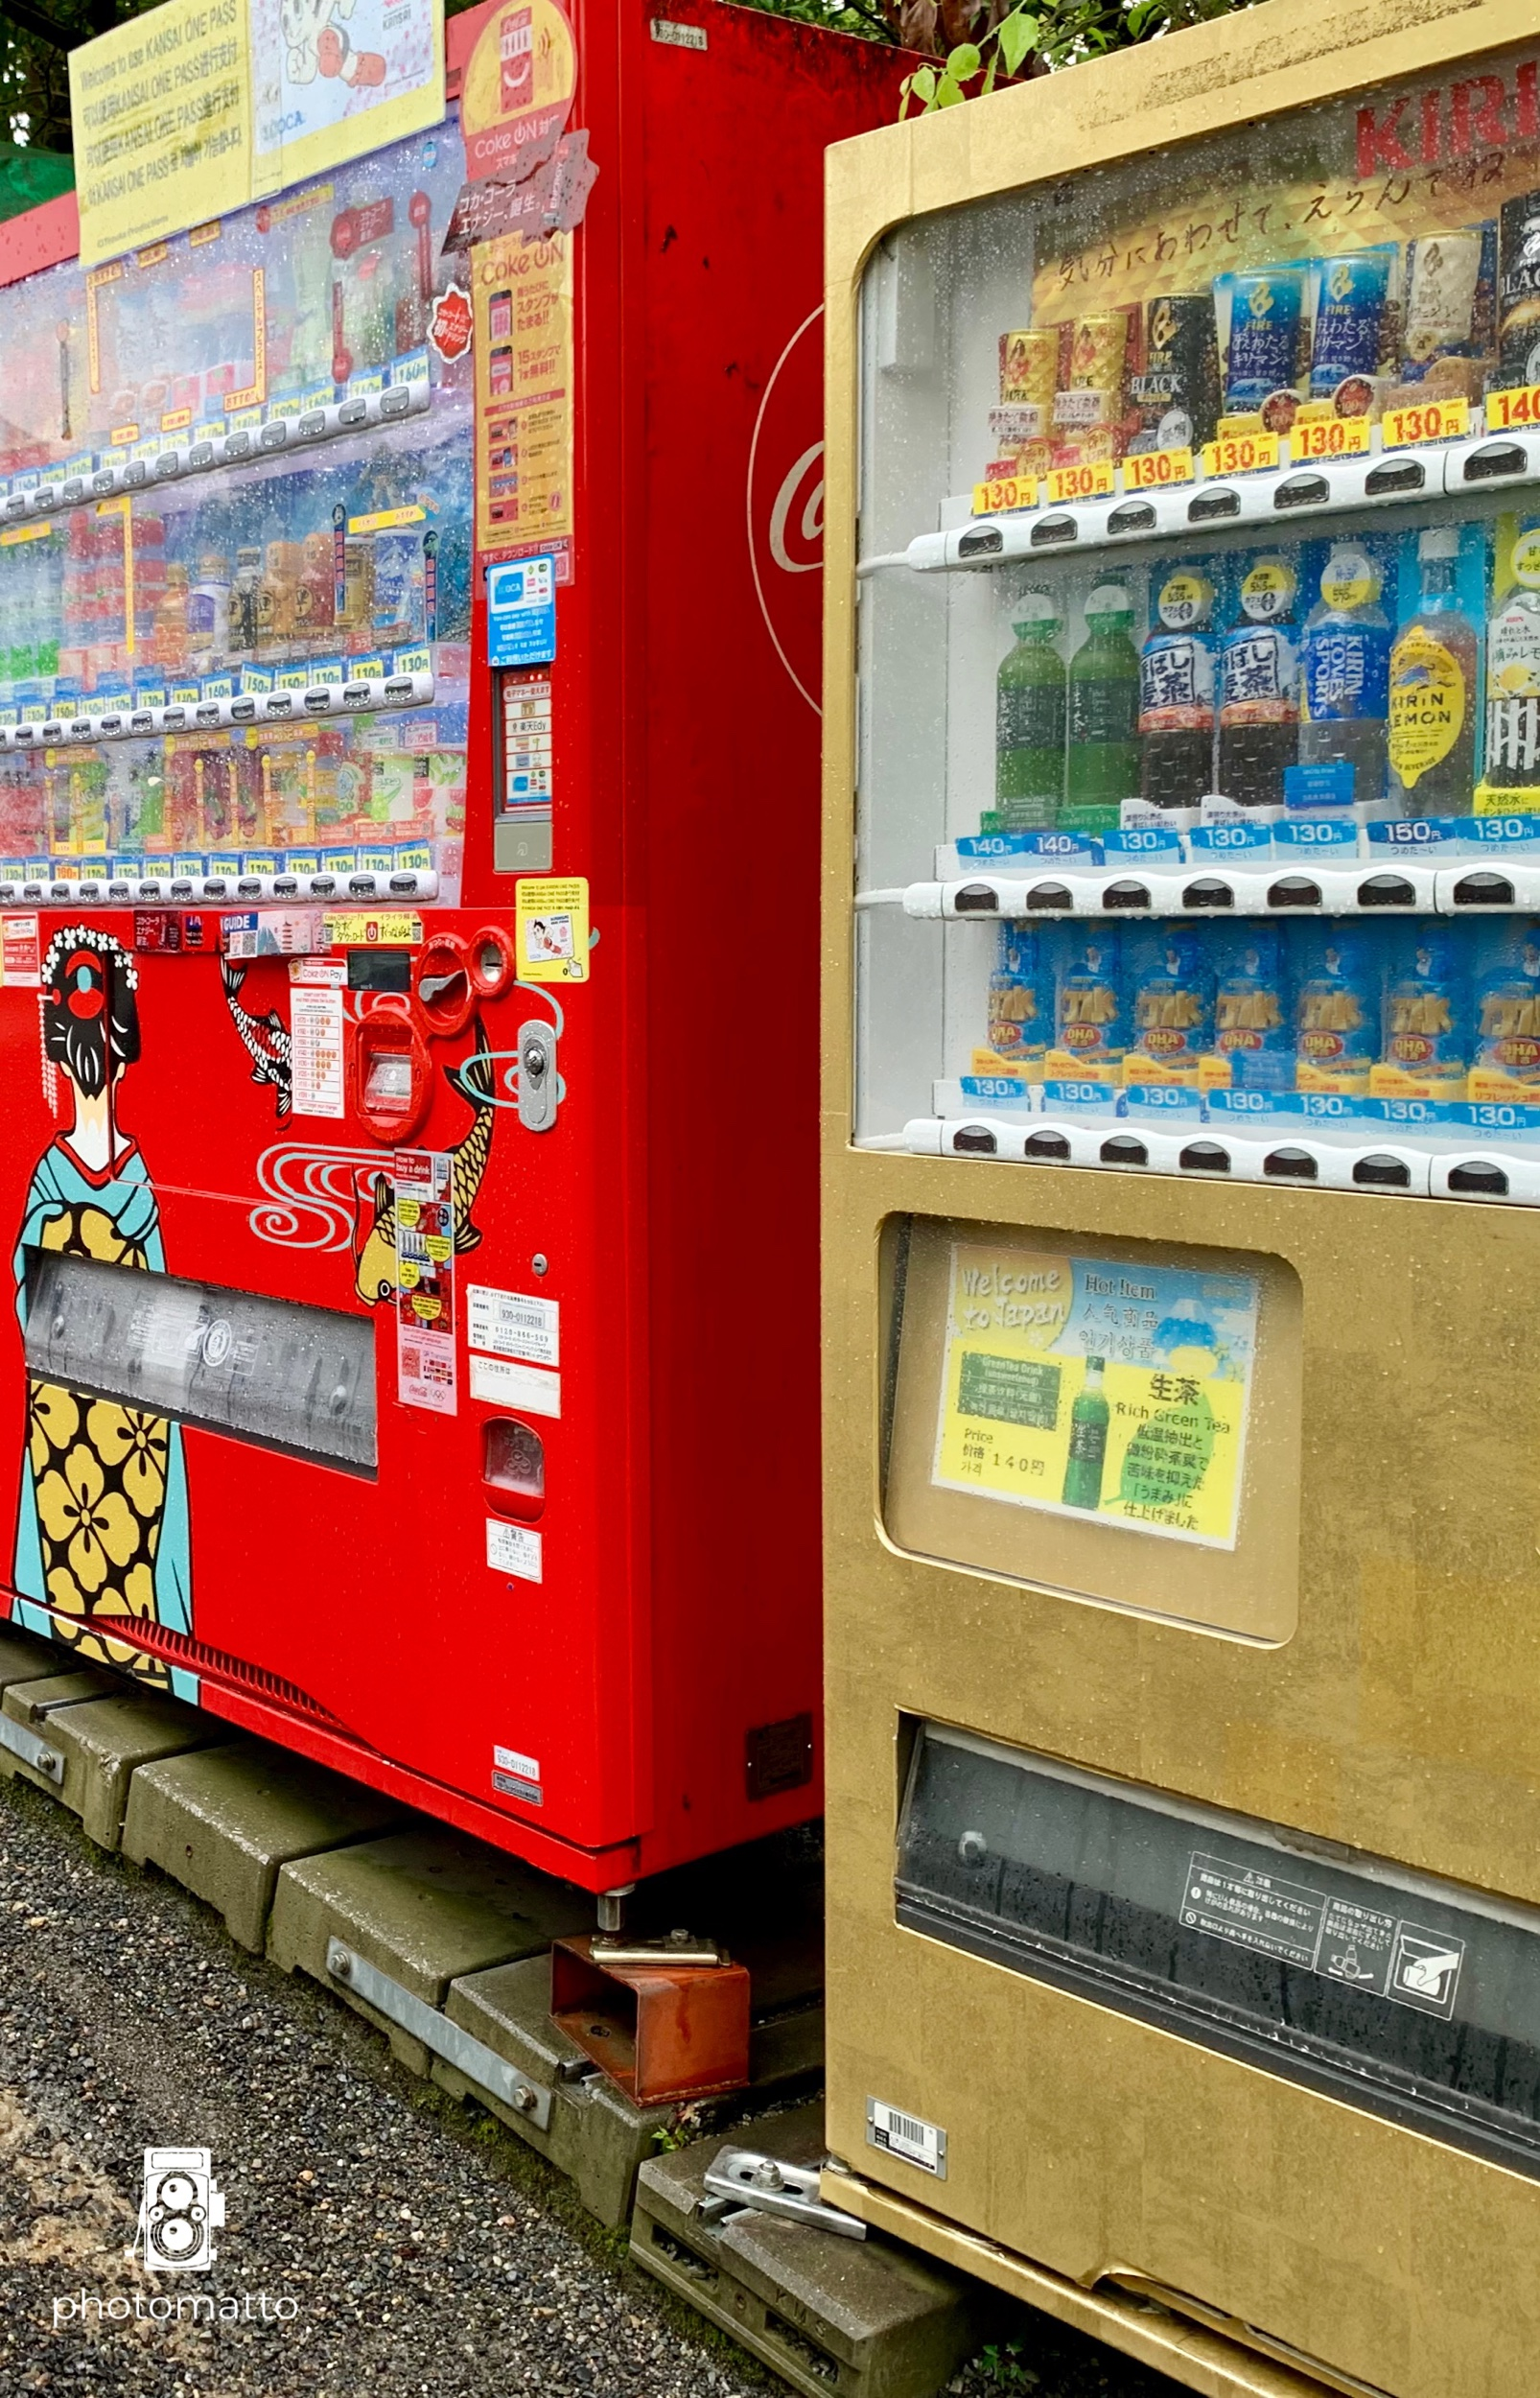 Vending machines everywhere even at the temples.